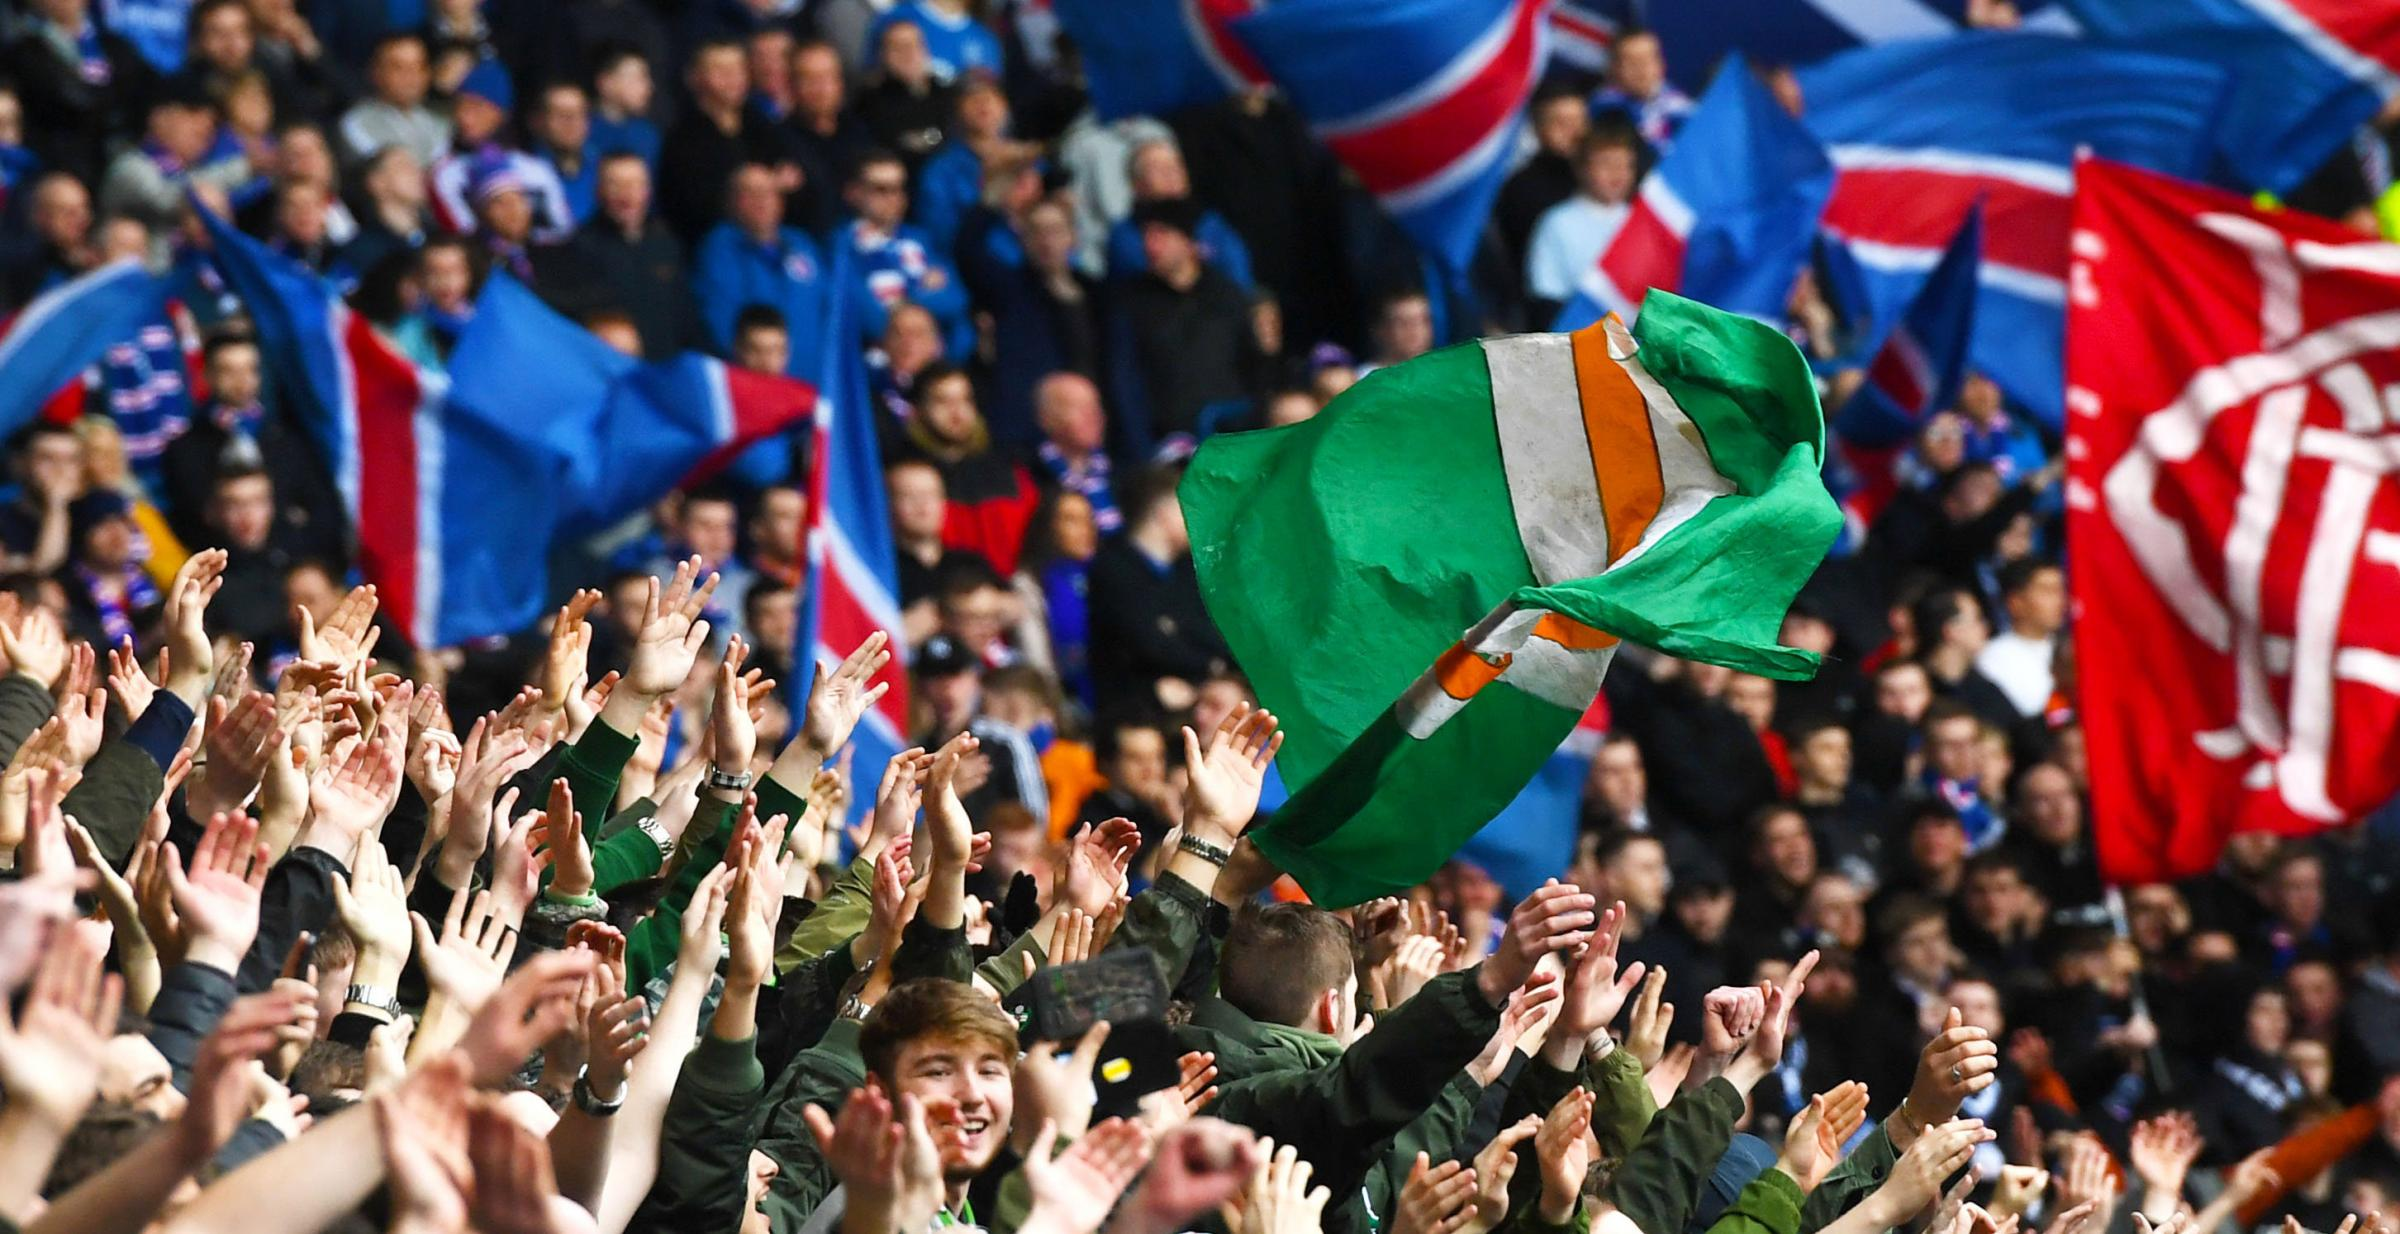 The Old Firm rivalry presents a tricky moral dilemma for Scots